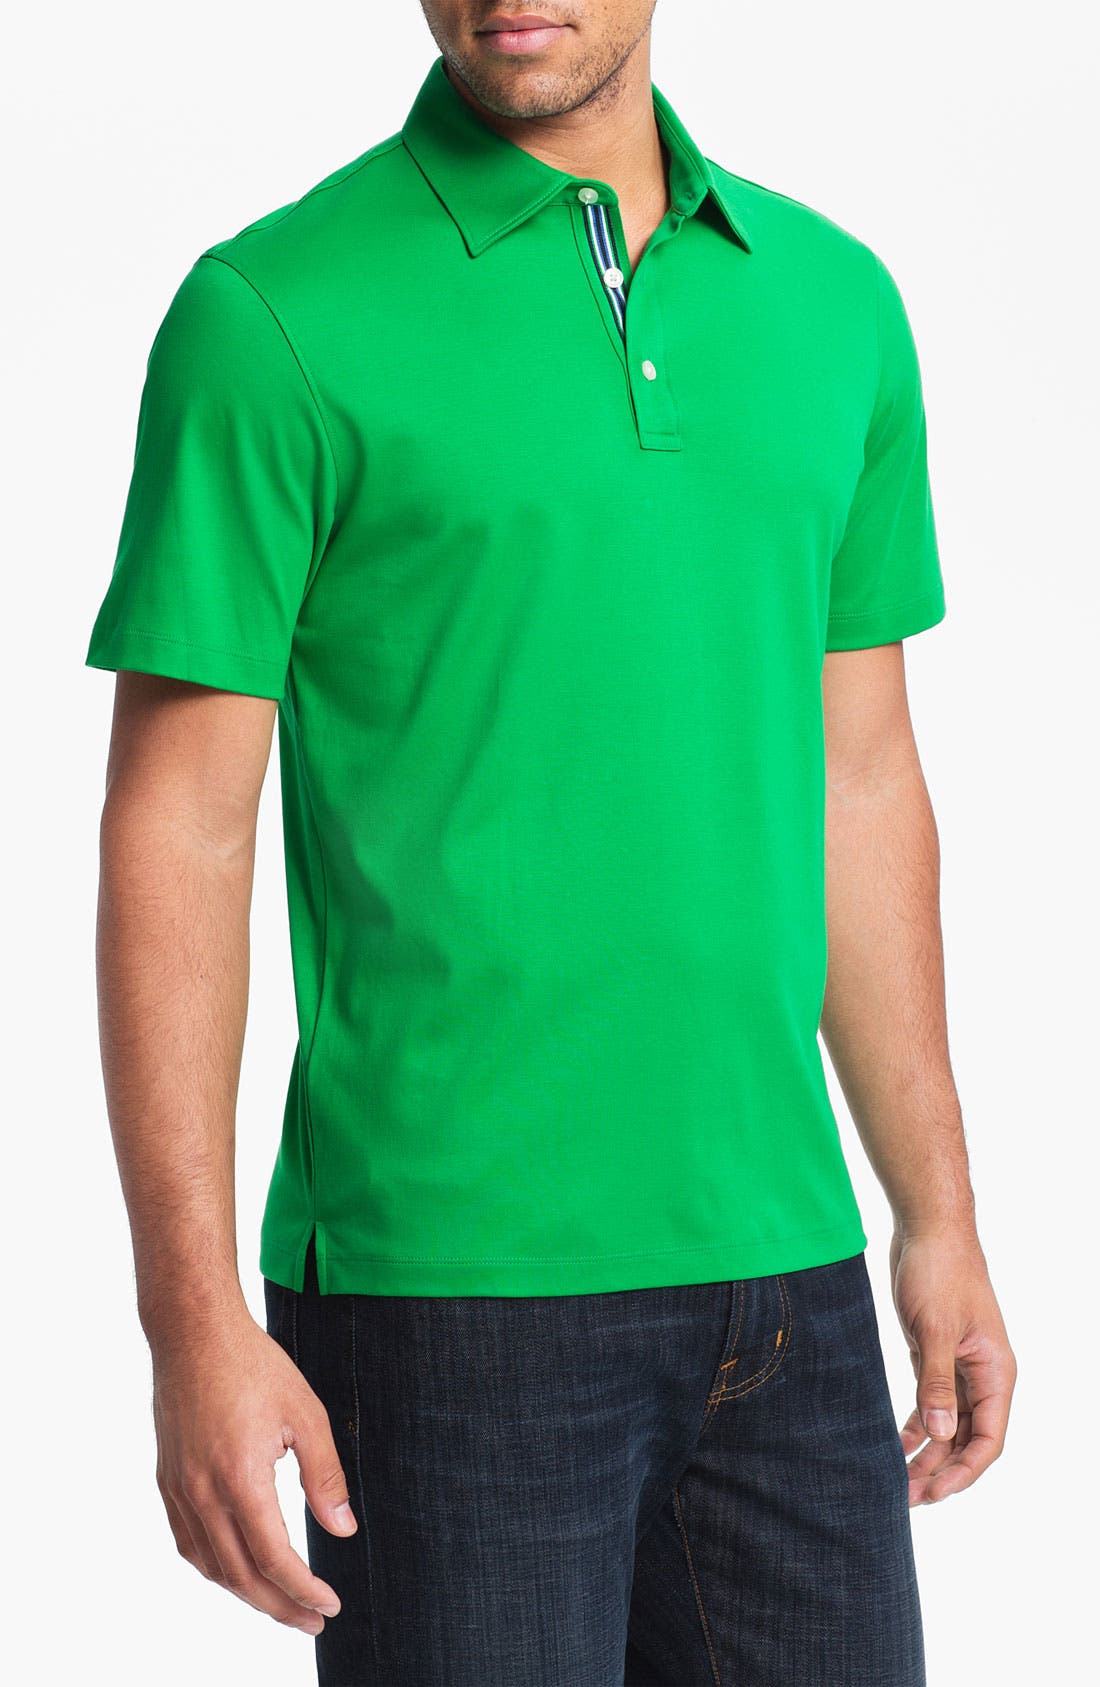 Alternate Image 1 Selected - Michael Kors Trim Fit Polo